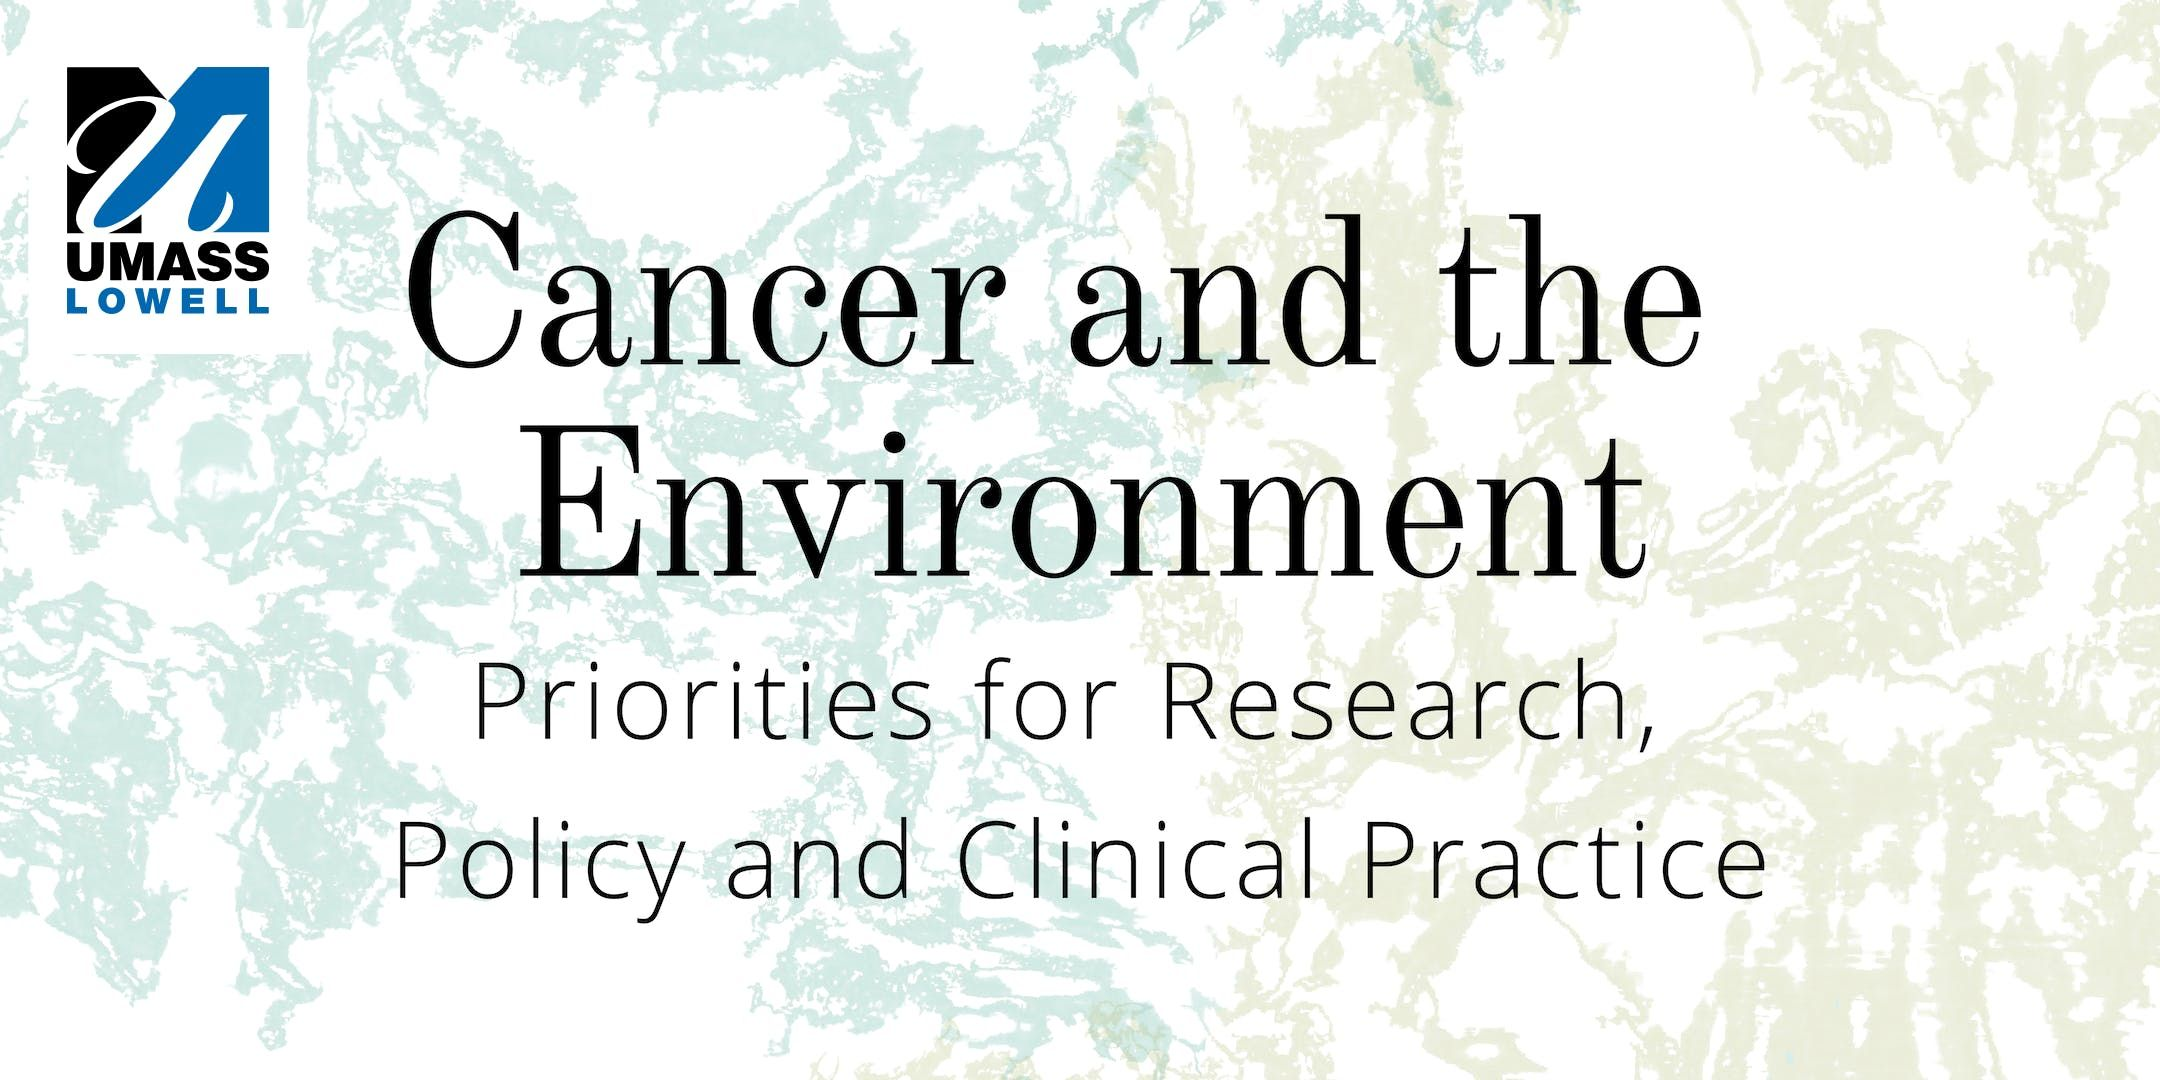 Cancer and the Environment Priorities for Research Policy and Clinical Practice